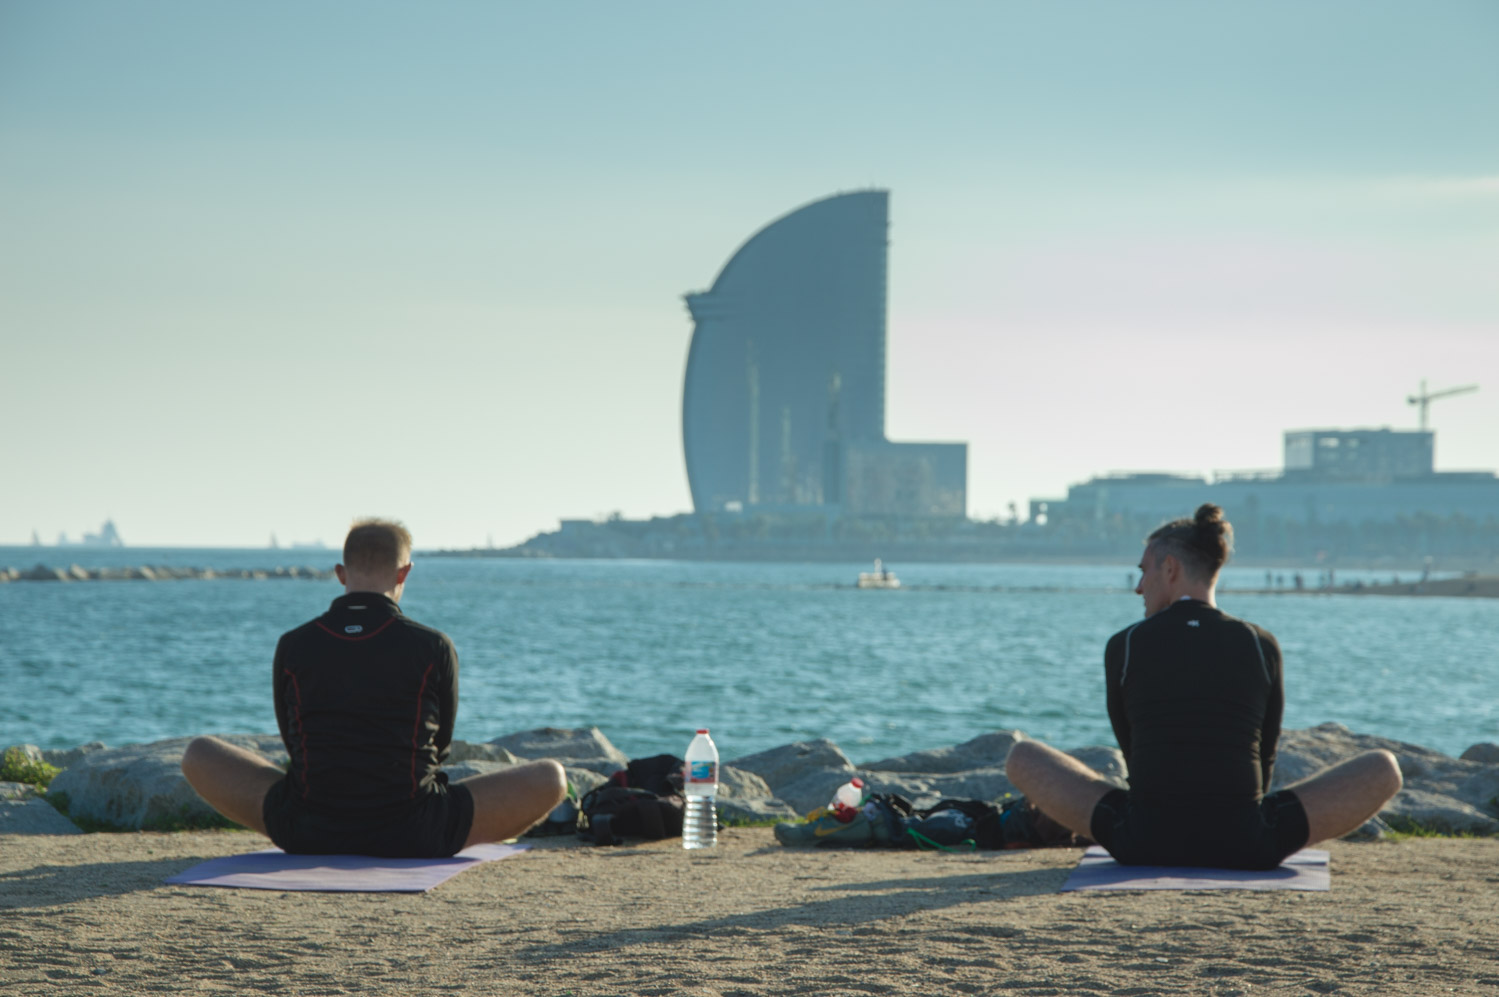 People doing yoga on the beach in Barcelona